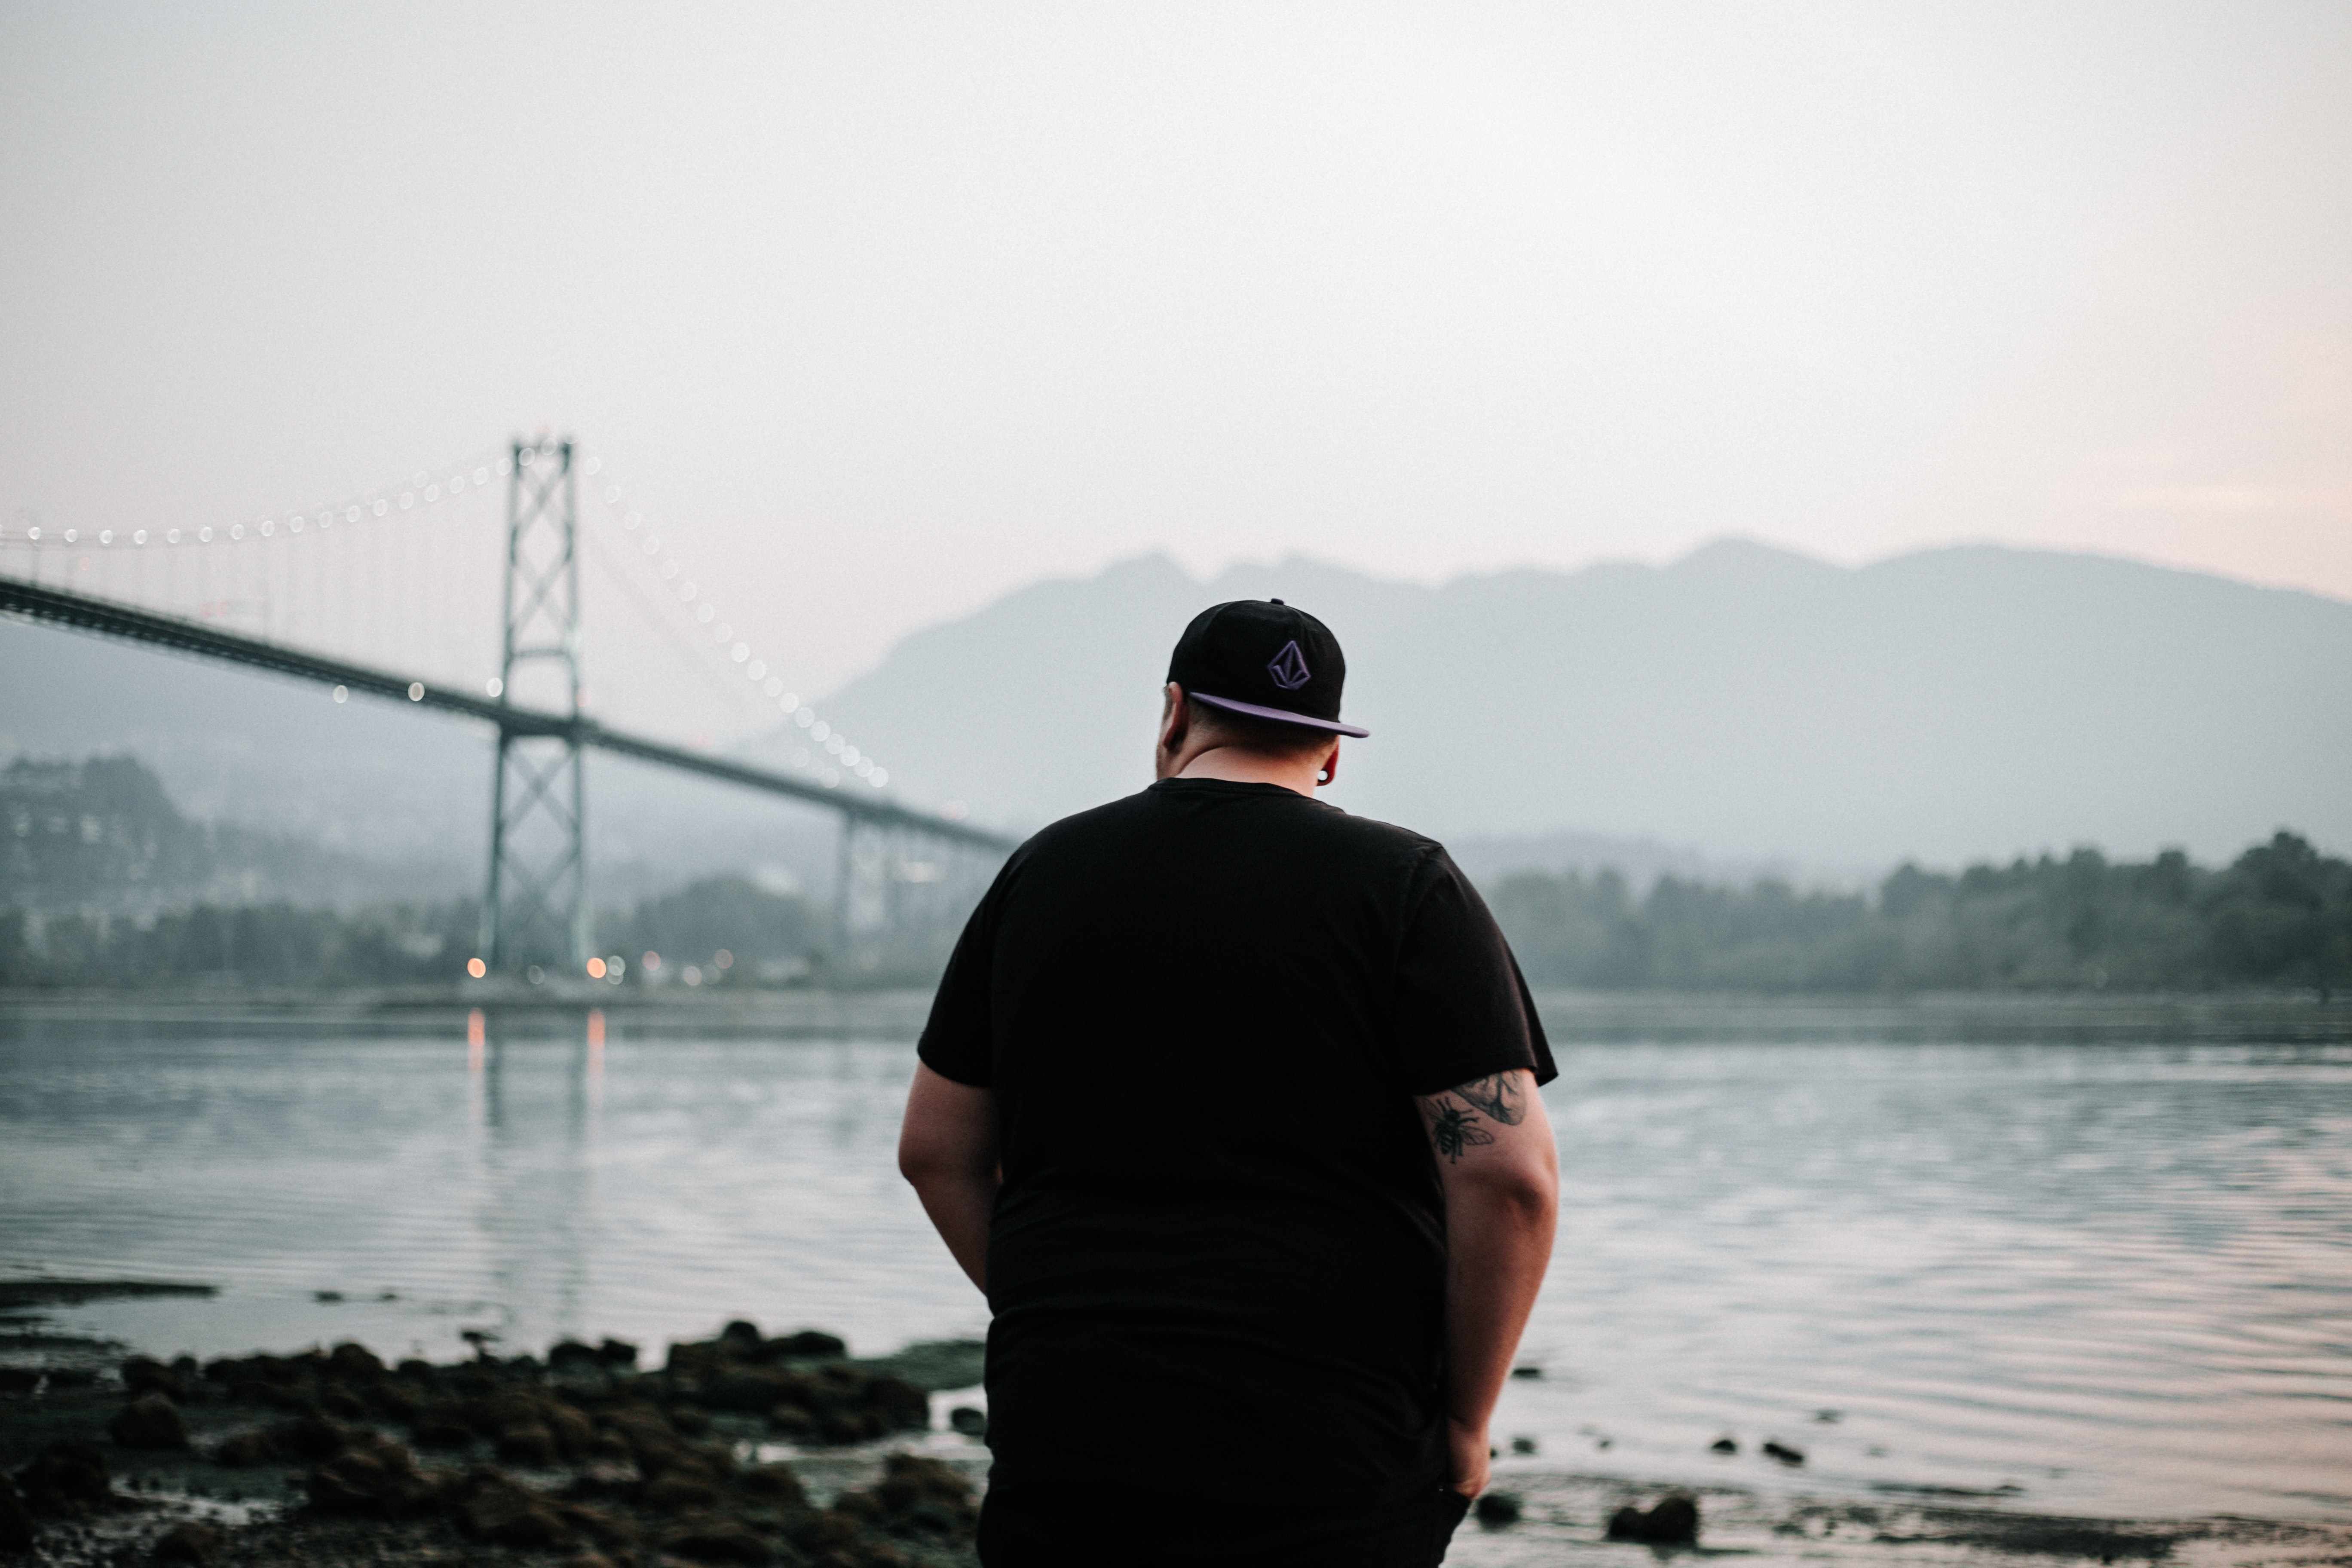 man in black shirt standing near body of water